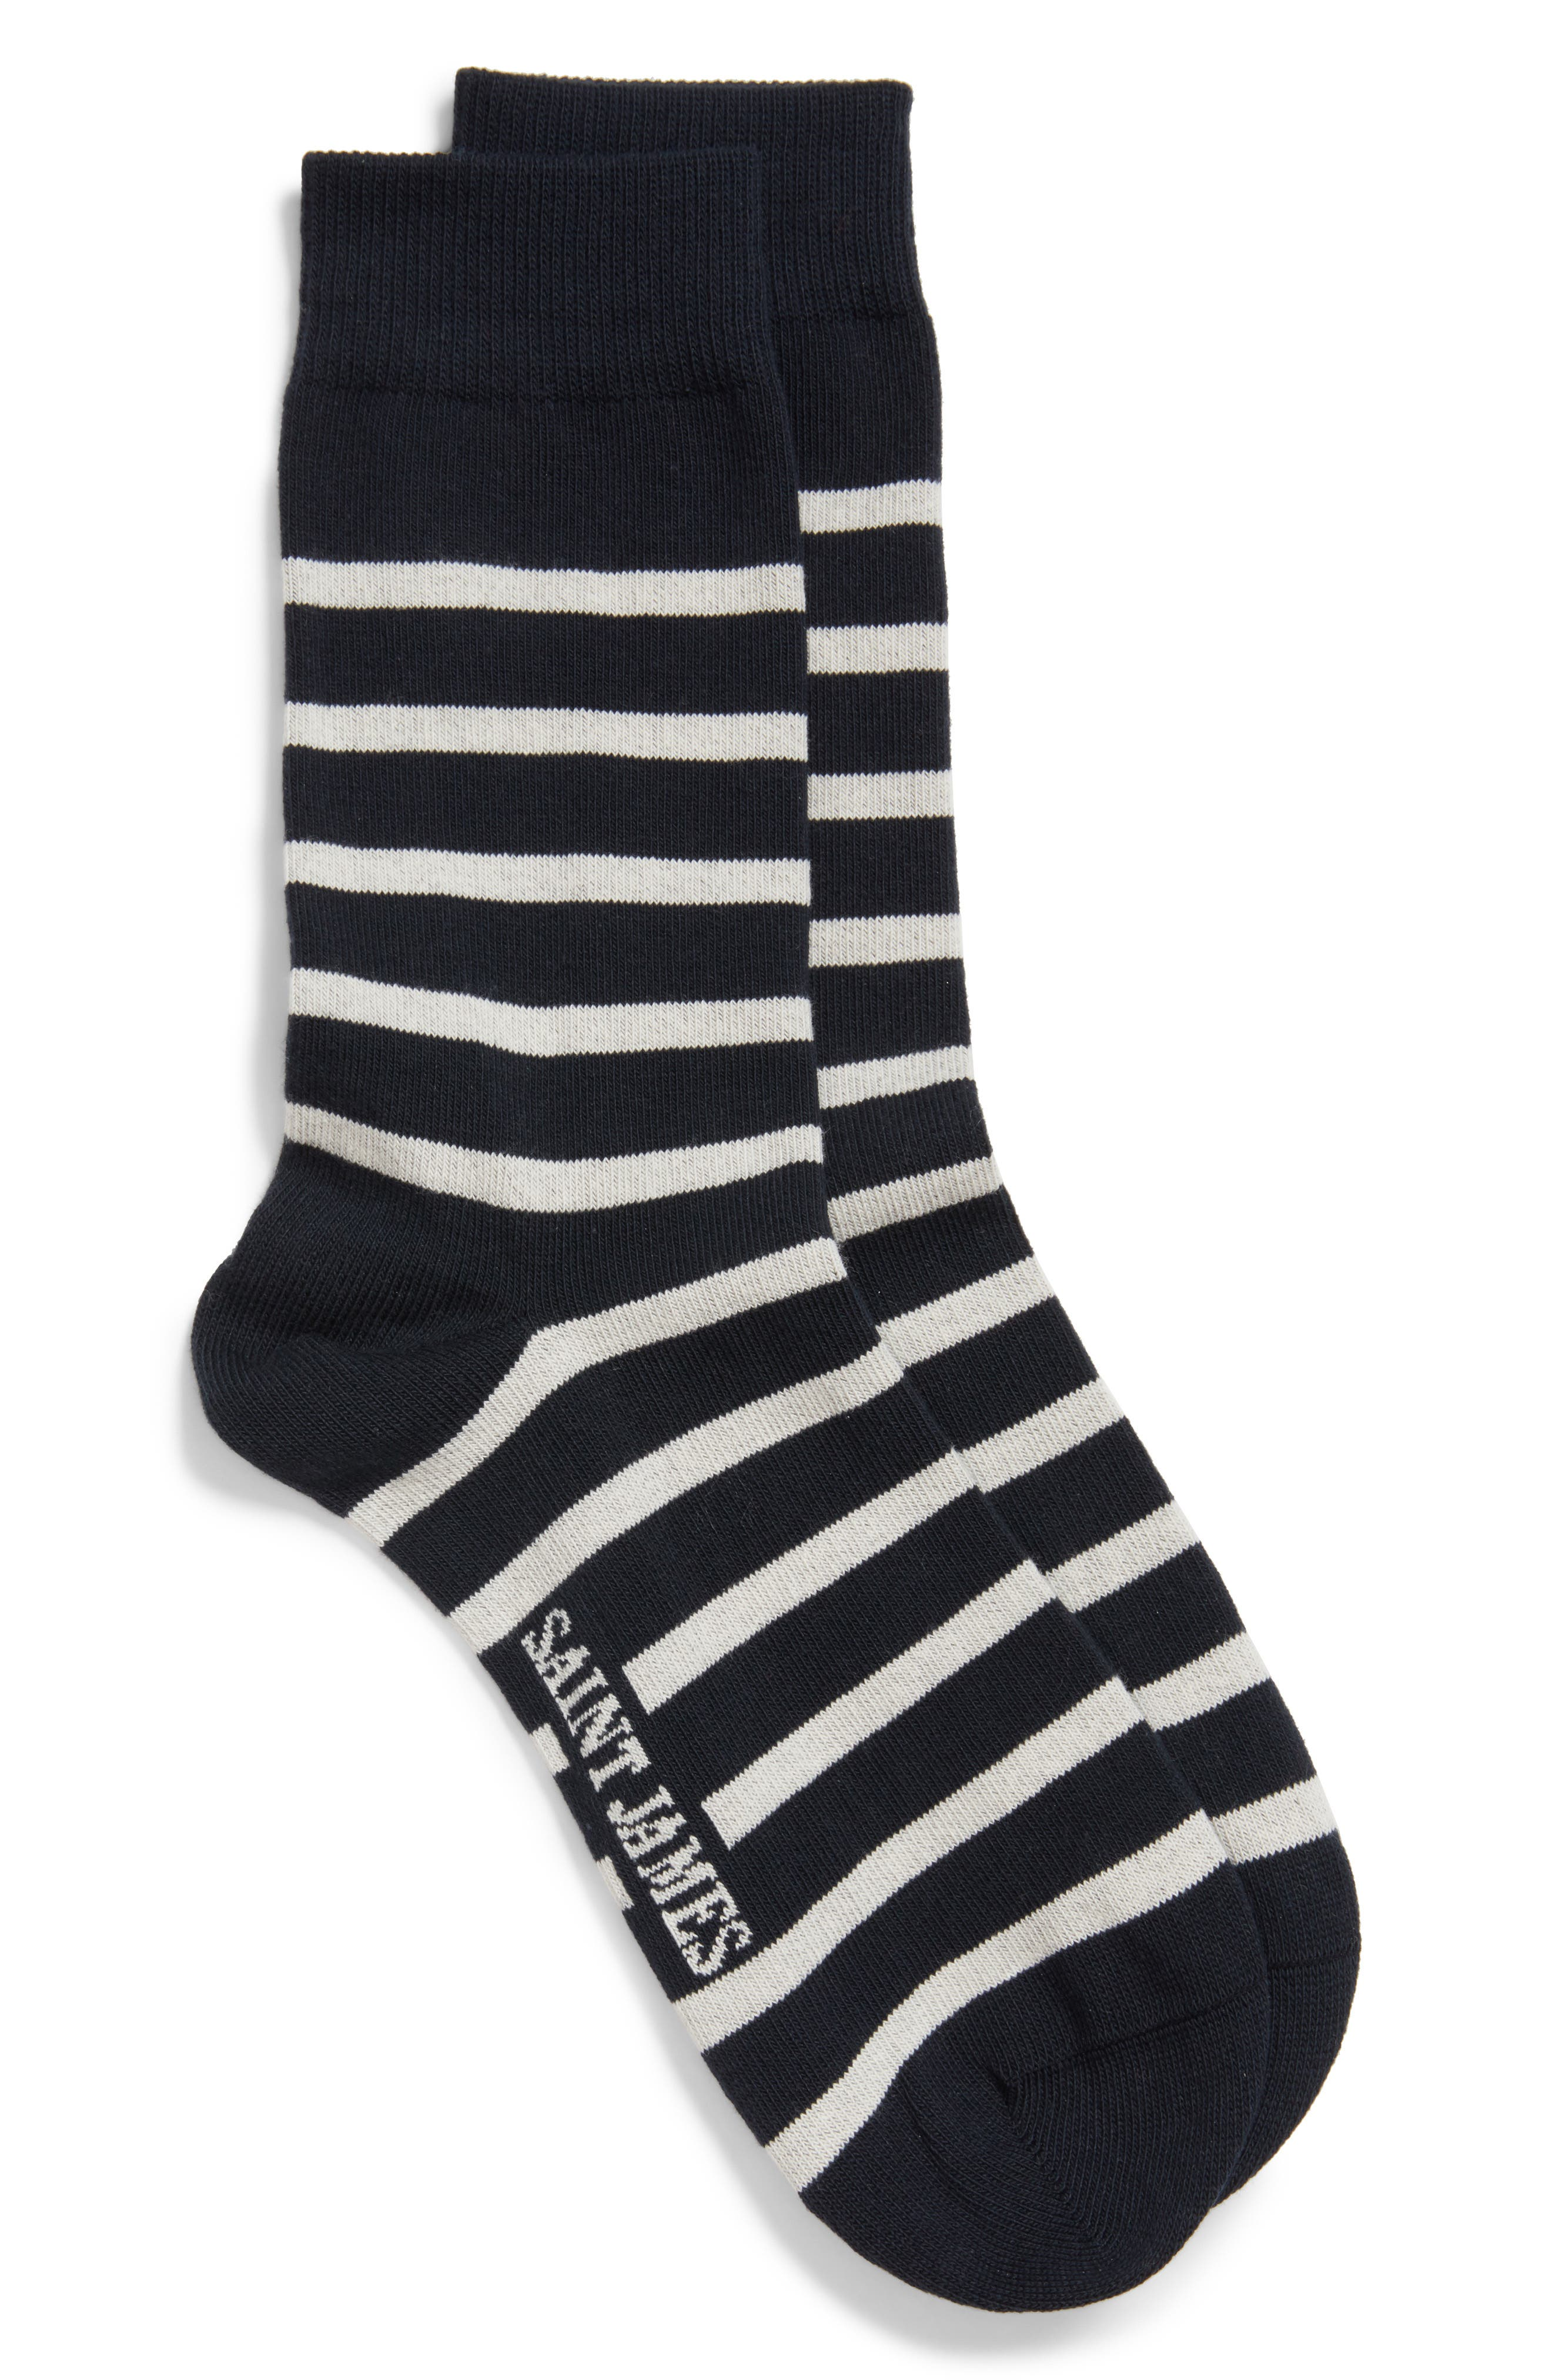 'Pieds Rayes A' Striped Socks,                         Main,                         color, Navy/ White